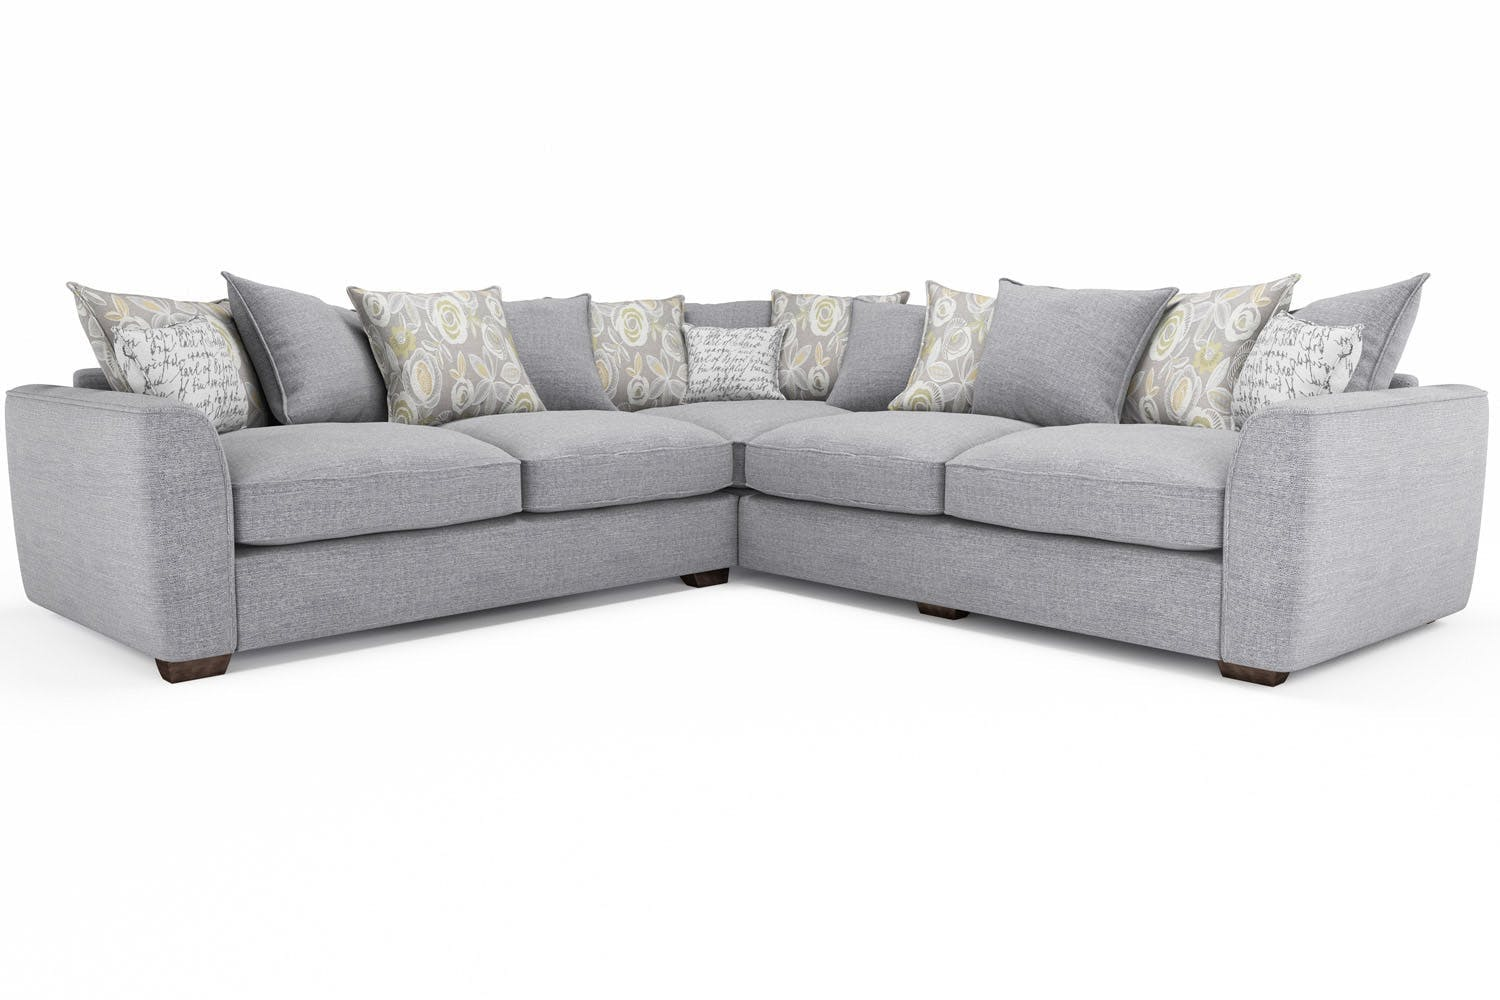 Grey Corner Sofas Dakota Grey Bonded Leather Corner Sofa ...